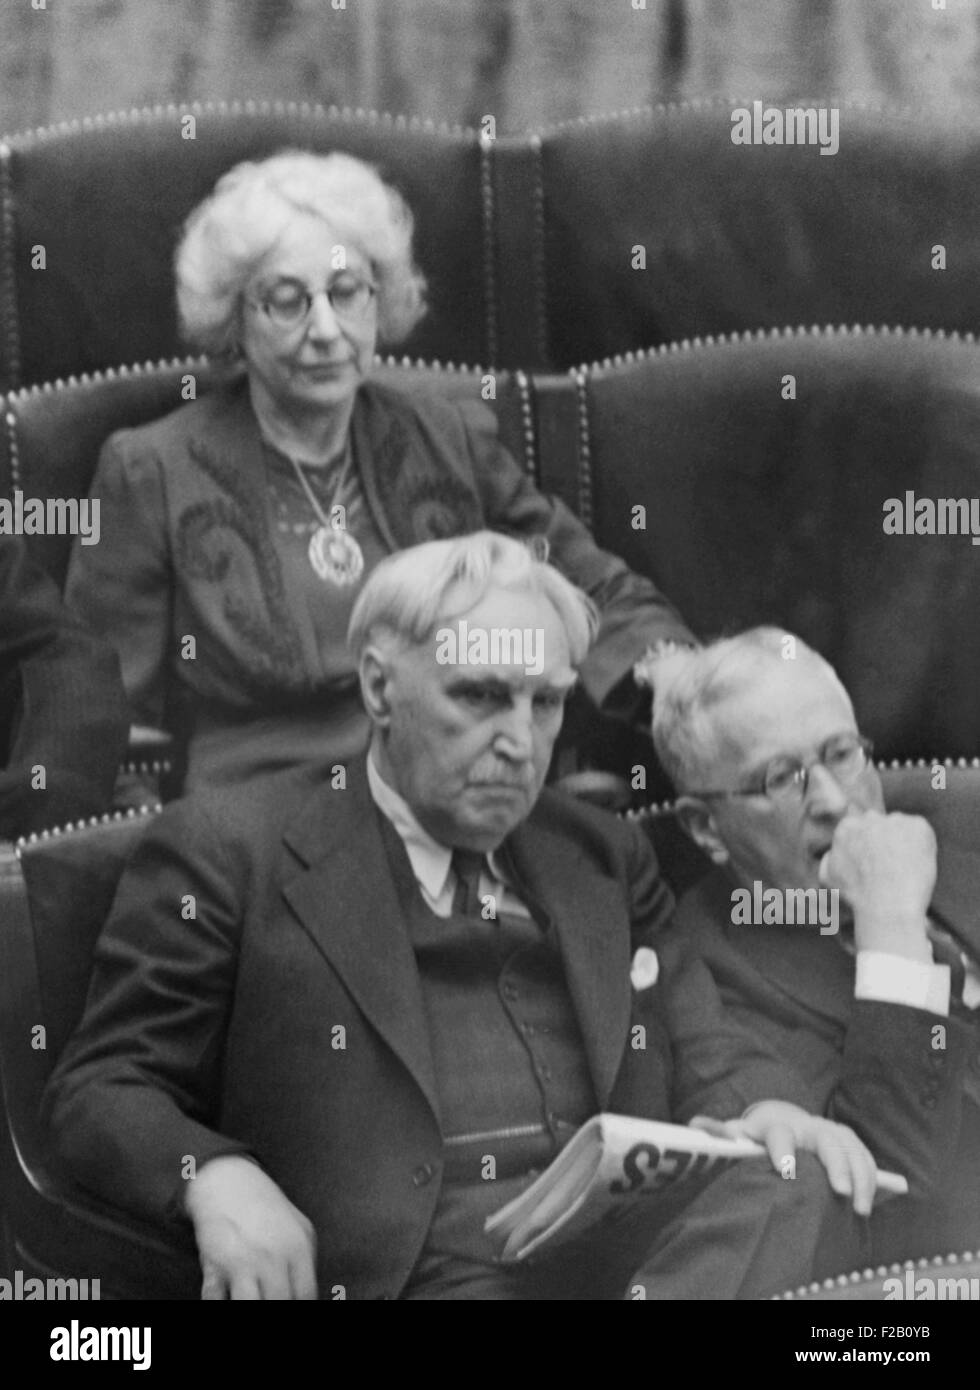 Rep. Jeannette Rankin of Montana, in House during Resolution of War Declaration on Germany and Italy. Dec. 11, 1941. - Stock Image